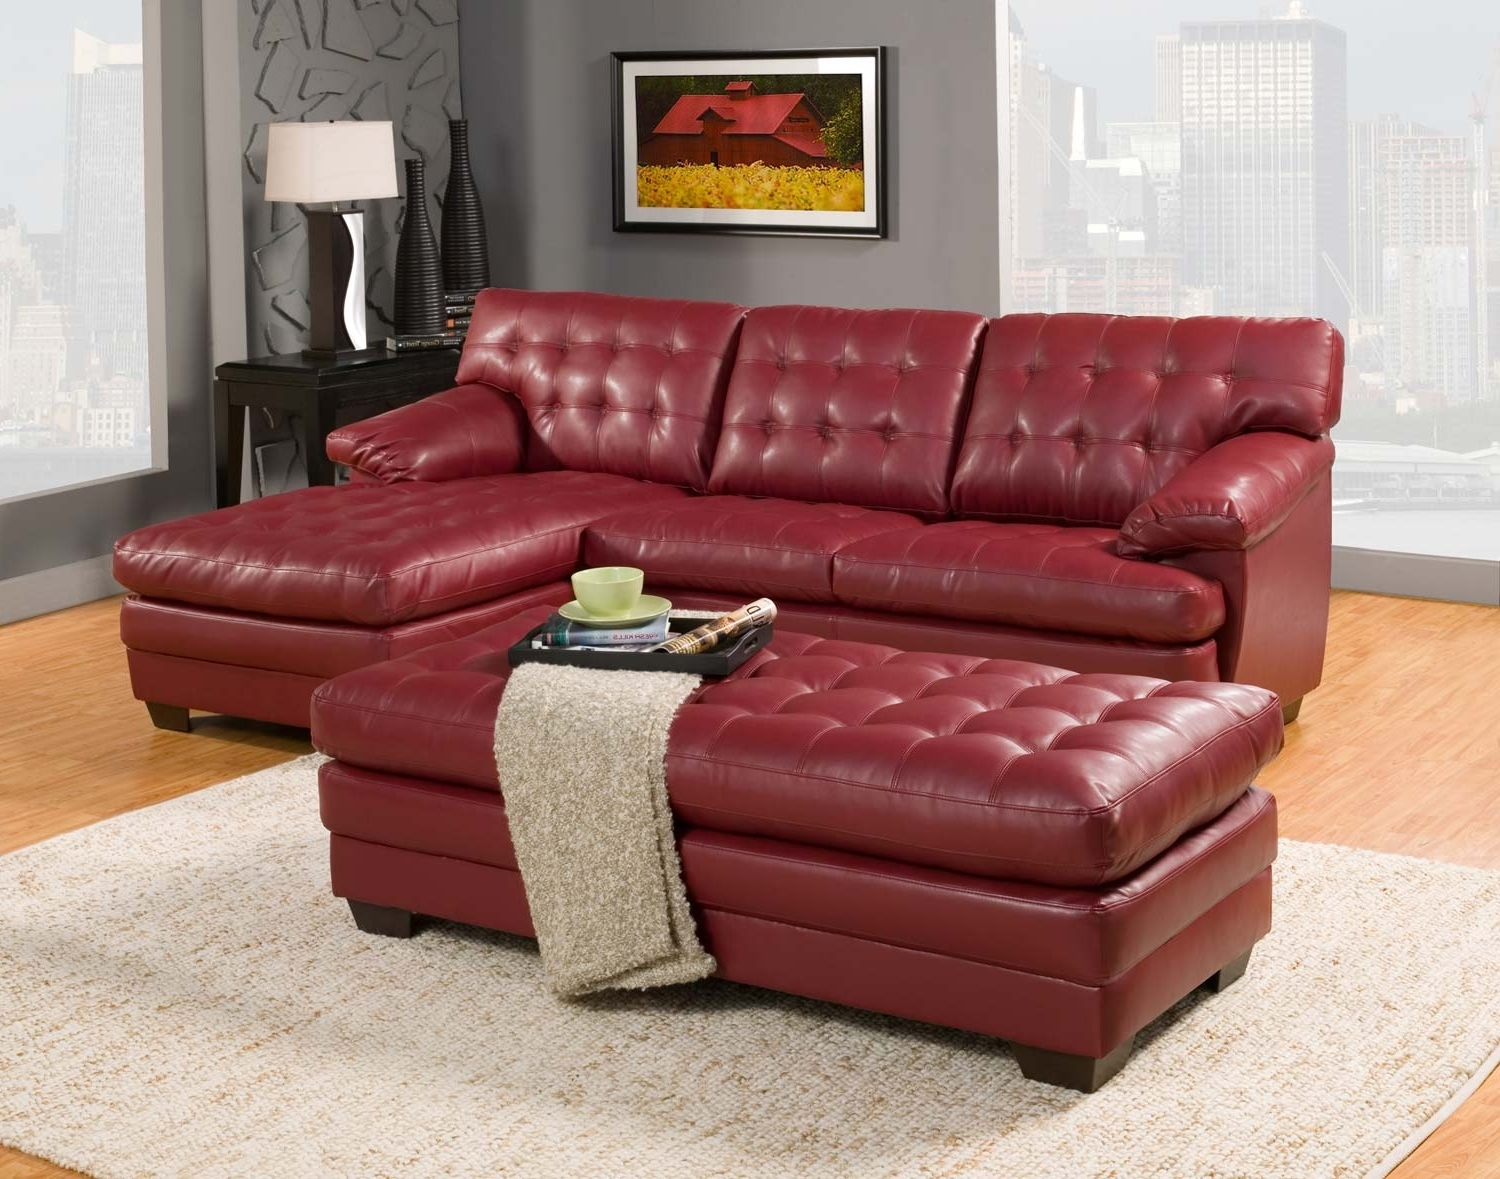 Trendy Red Leather Sectionals With Ottoman Inside Red Sectional Sofa With Ottoman (View 20 of 20)